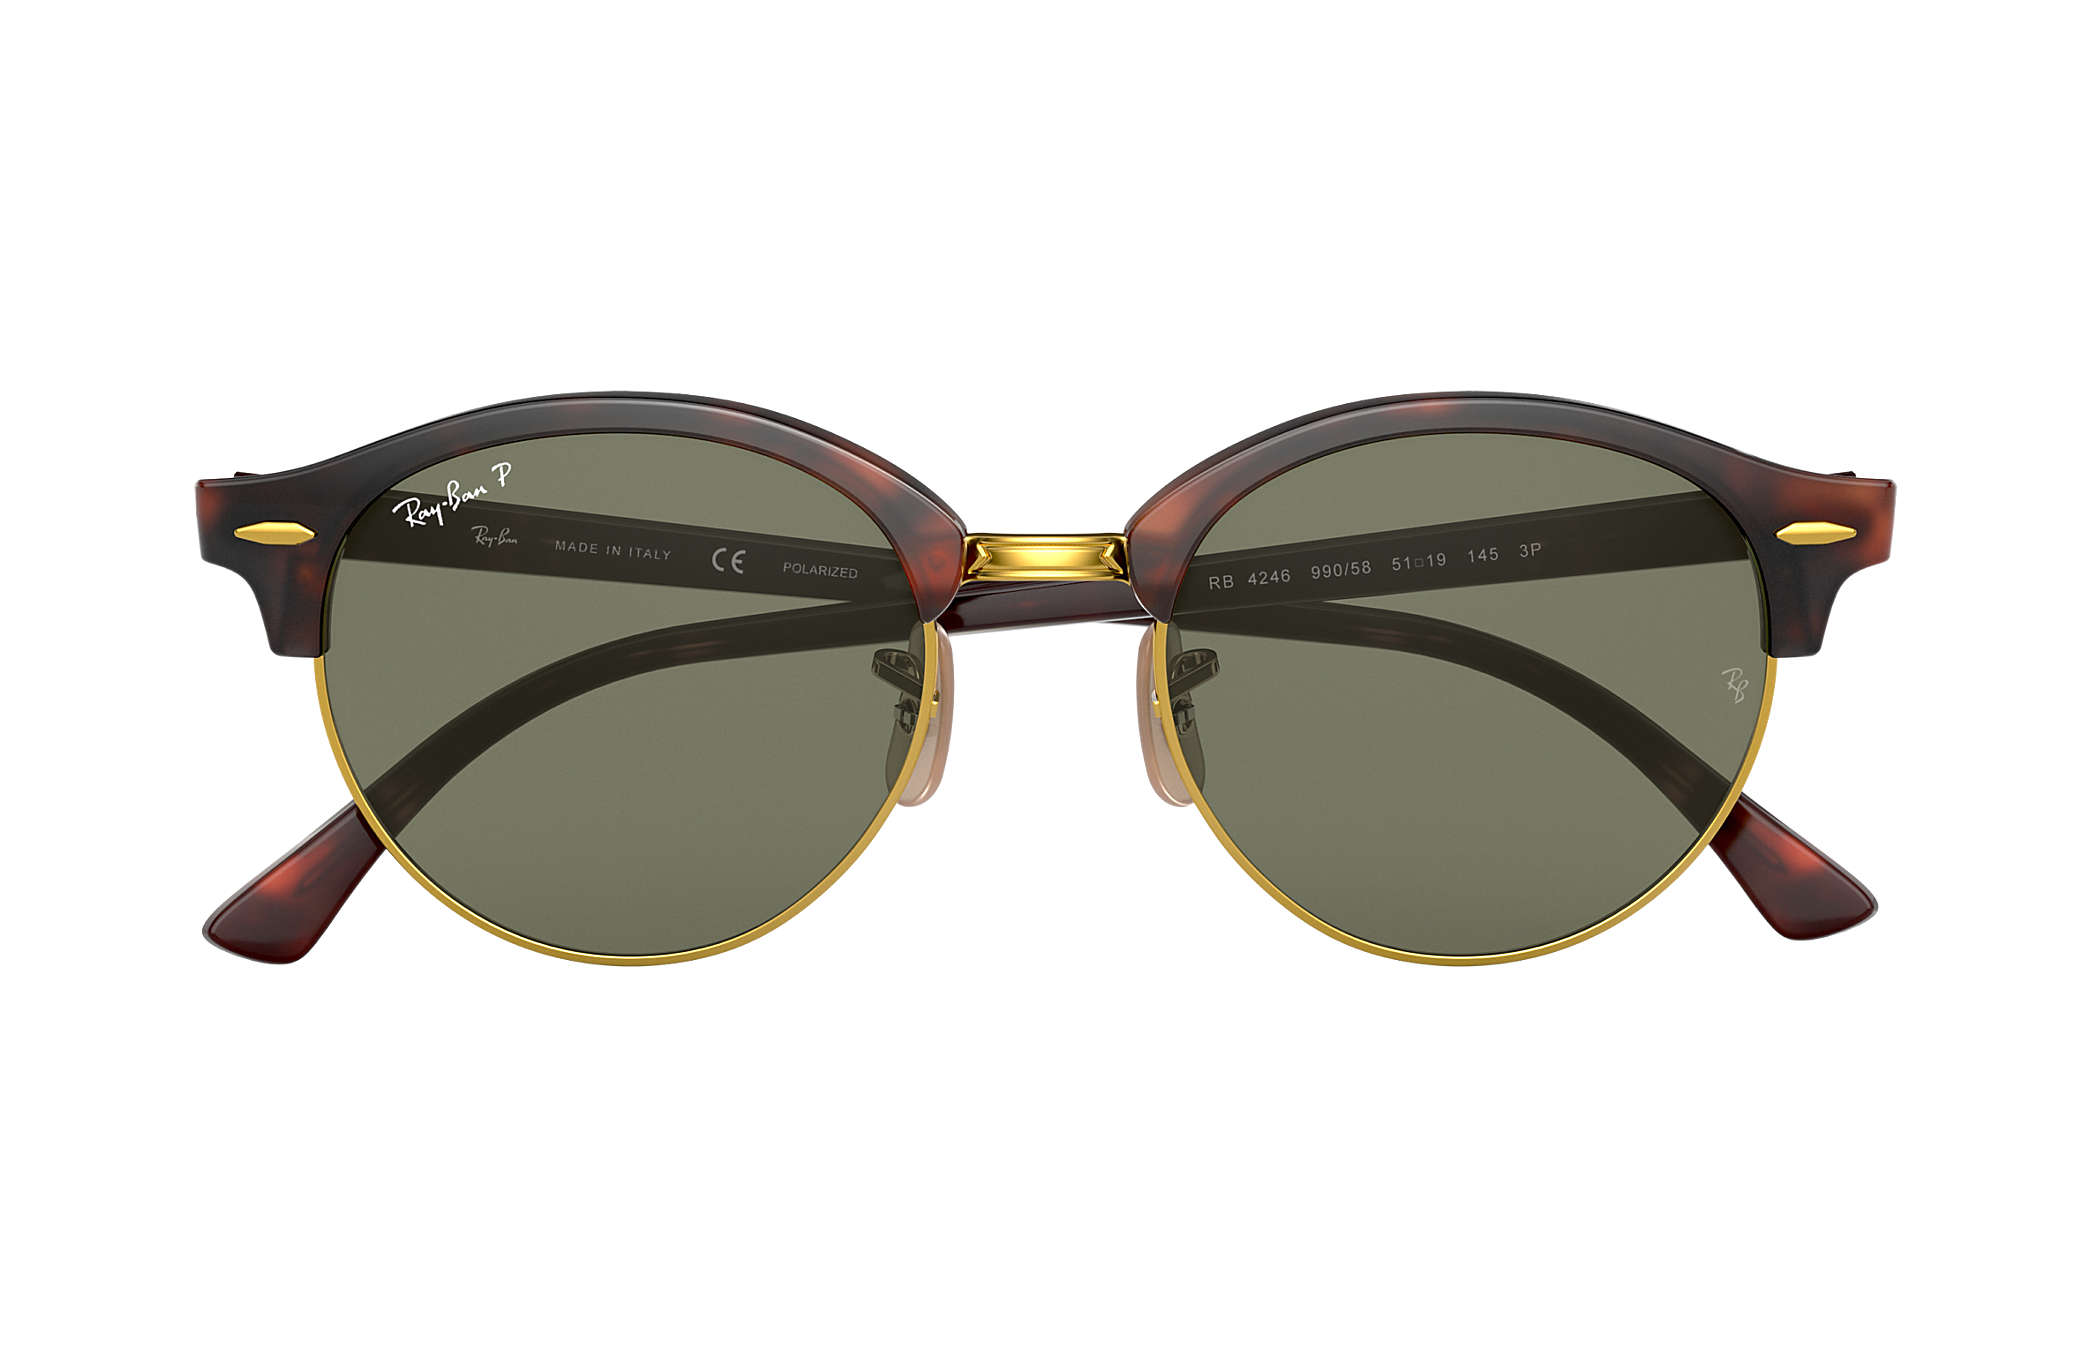 e7573d36c5 Ray-Ban Clubround Classic RB4246 Tortoise - Acetate - Green ...